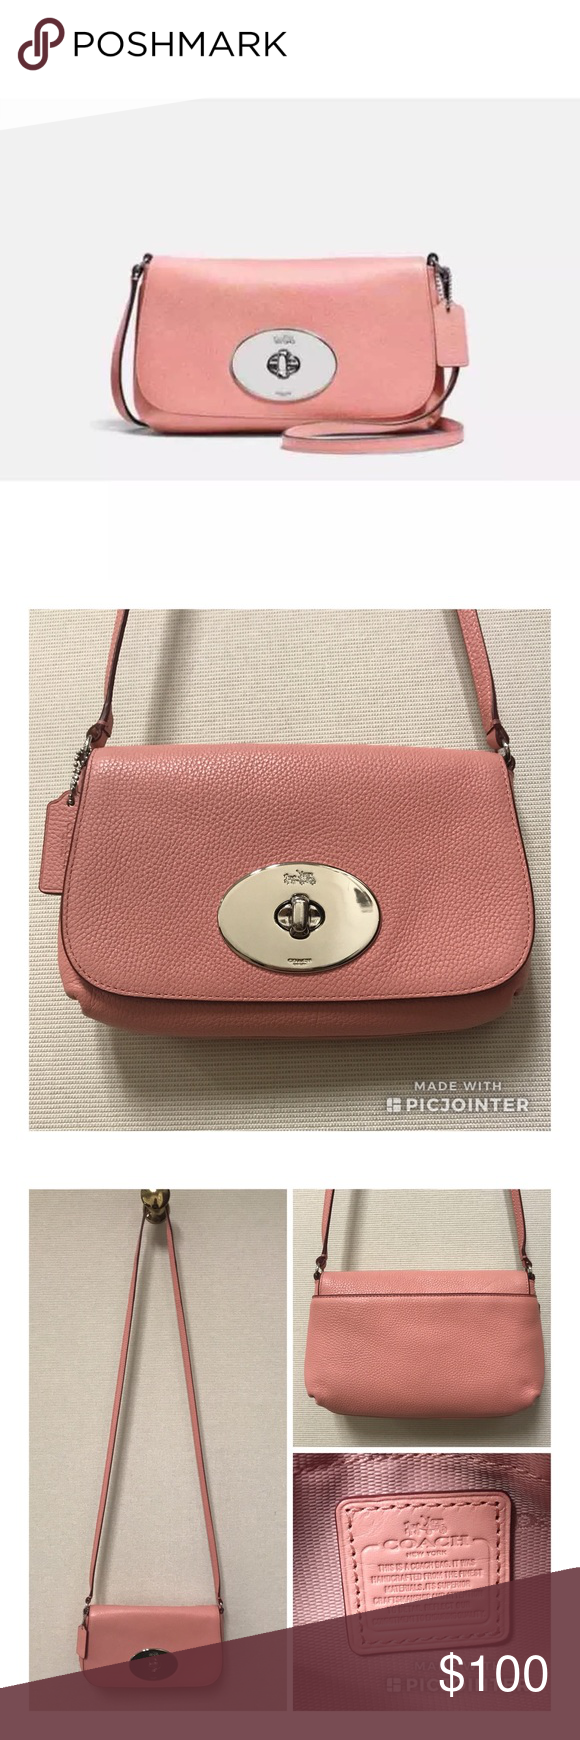 b5b2207b43 Coach LIV Pouch Crossbody in Pink Leather Cover photo is a stock photo. Authentic  COACH